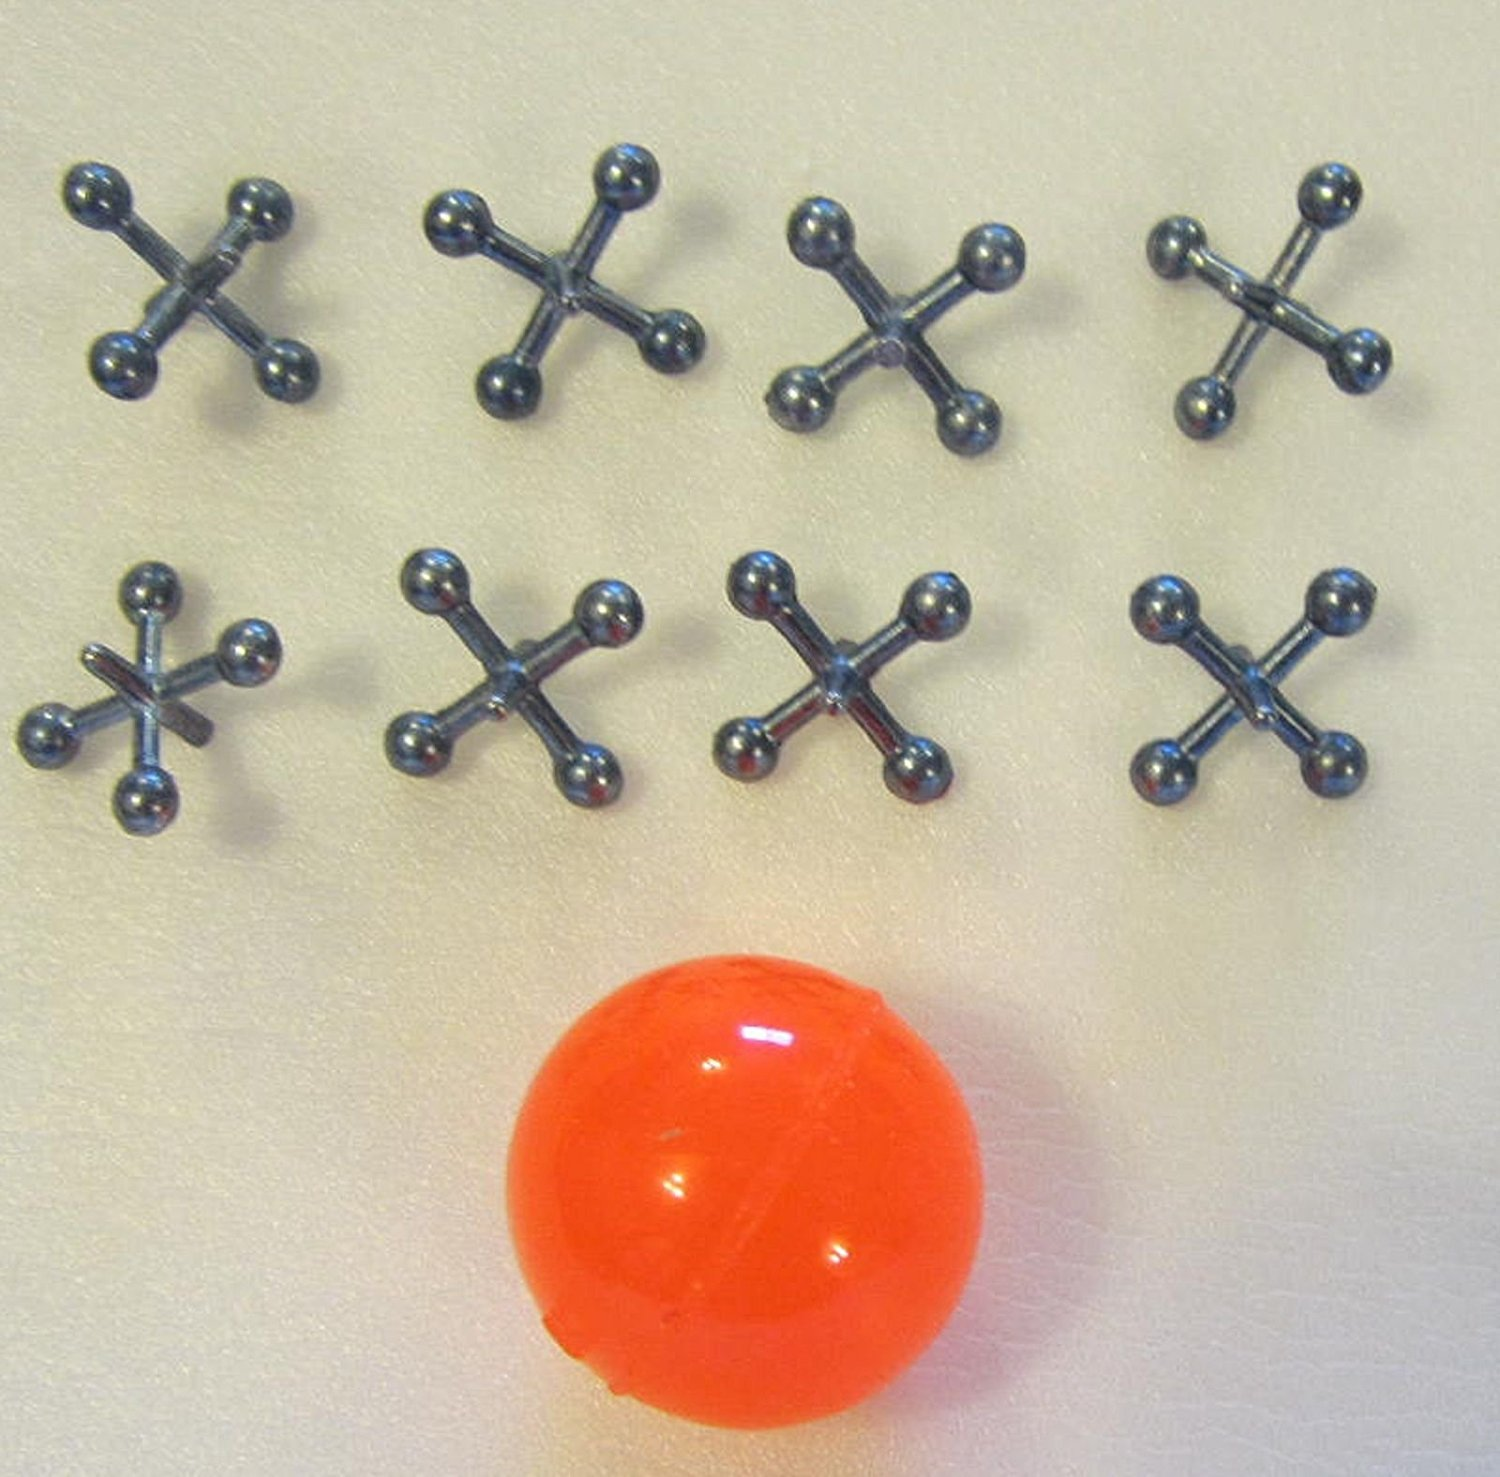 METAL STEEL JACKS WITH SUPER RED RUBBER BALL GAME CLASSIC TOY KIDS- 12PACK